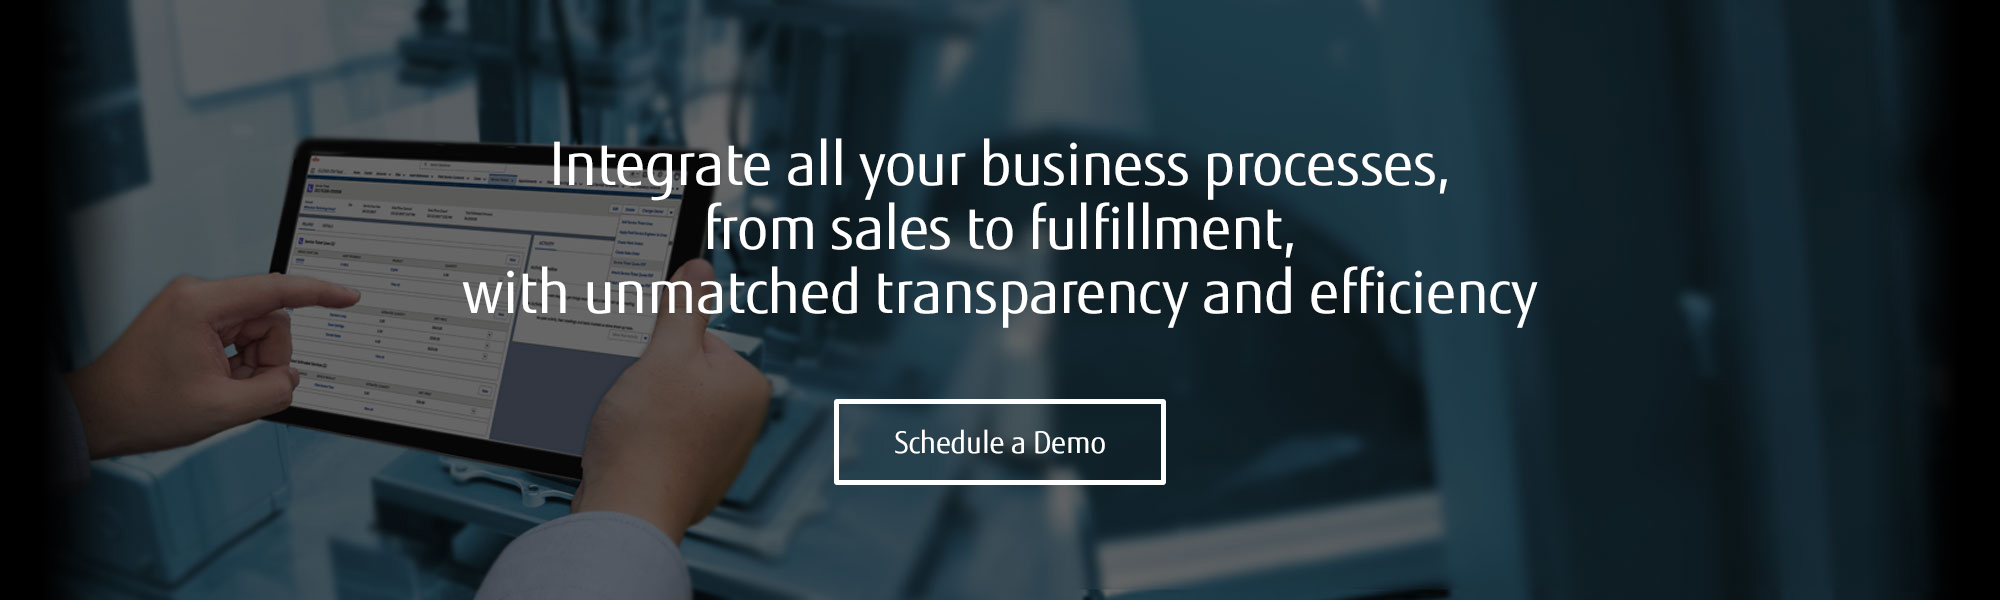 Integrate all your business processes, from sales to fulfillment, with unmatched transparency and efficiency. Schedule a demo.